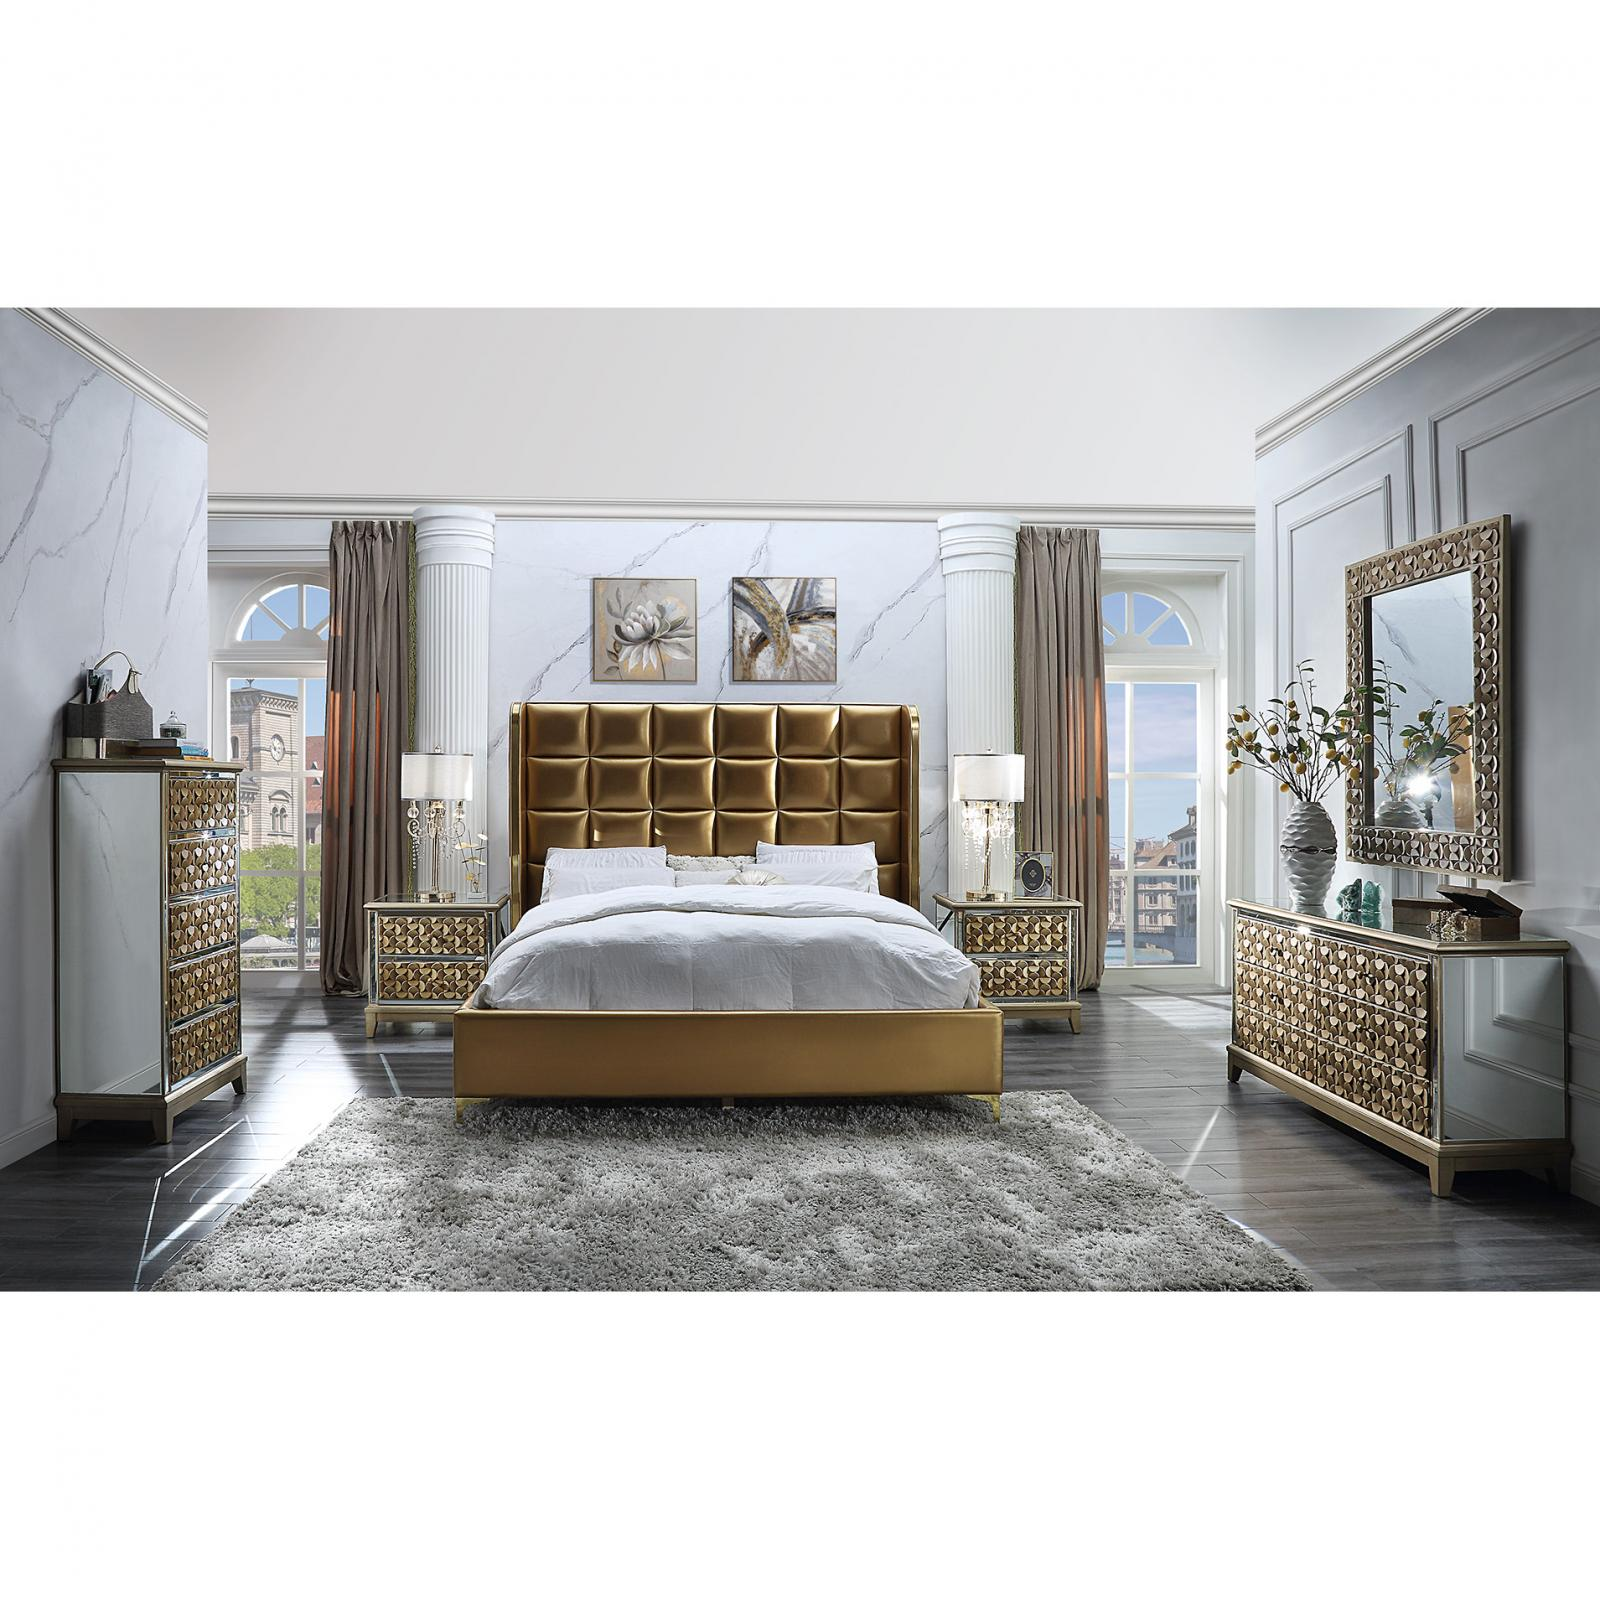 Modern Gold, Antique Faux Leather and Wood Eastern King Panel Bedroom Set 5 pcs HD-6065 by Homey Design